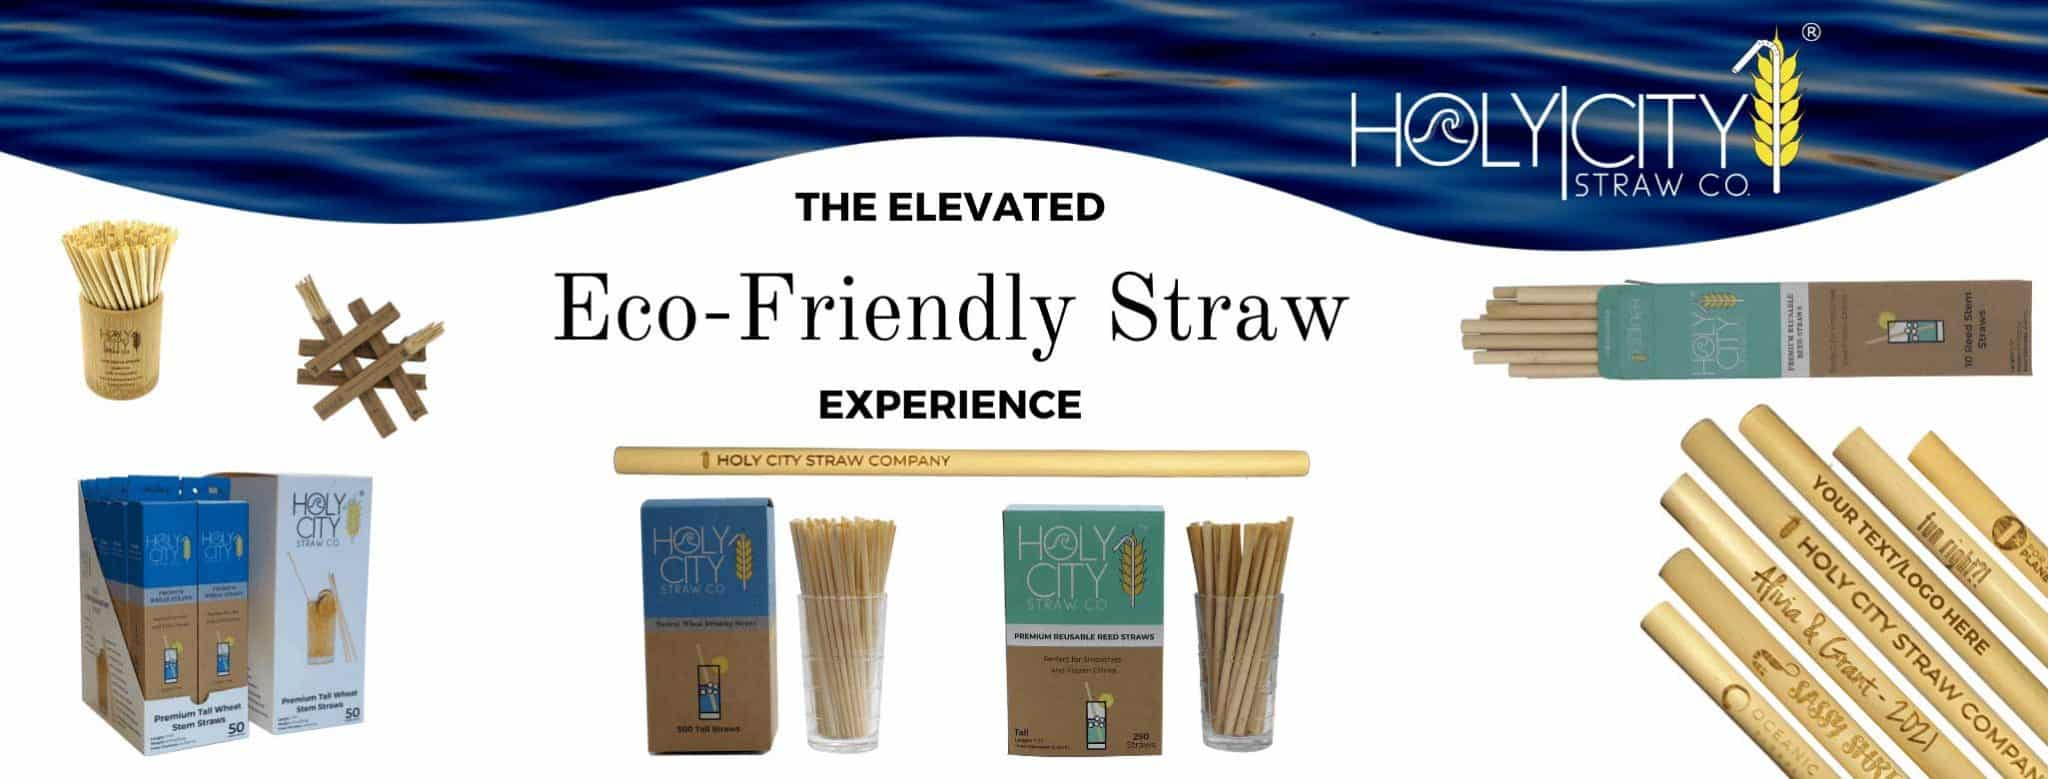 Tom Crowley with Holy City Straw Company in Charleston SC